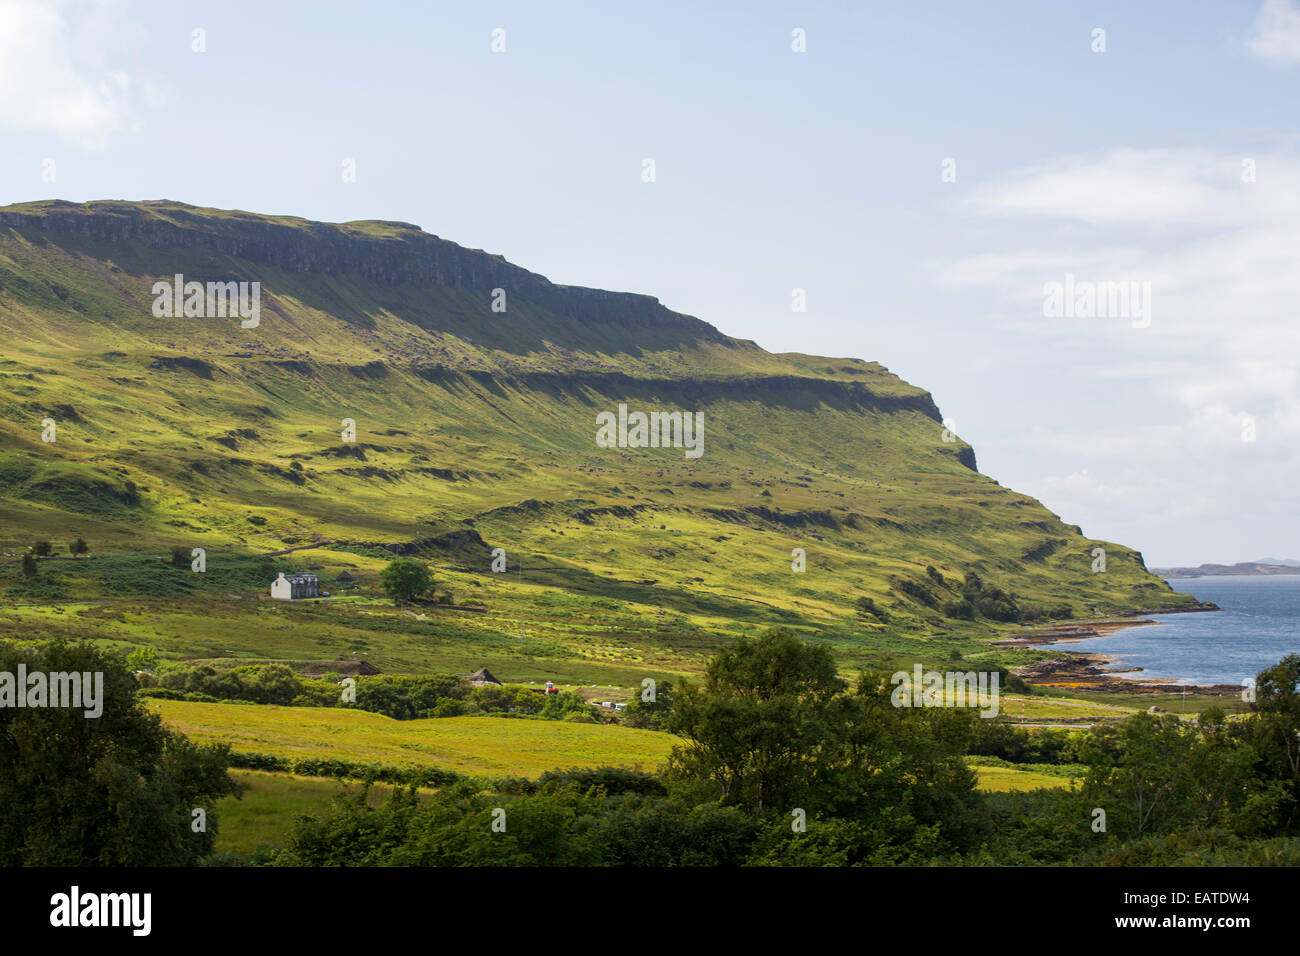 An isolated house above Loch na Keal near Ben More on the Isle of Mull, Scotland, UK. - Stock Image